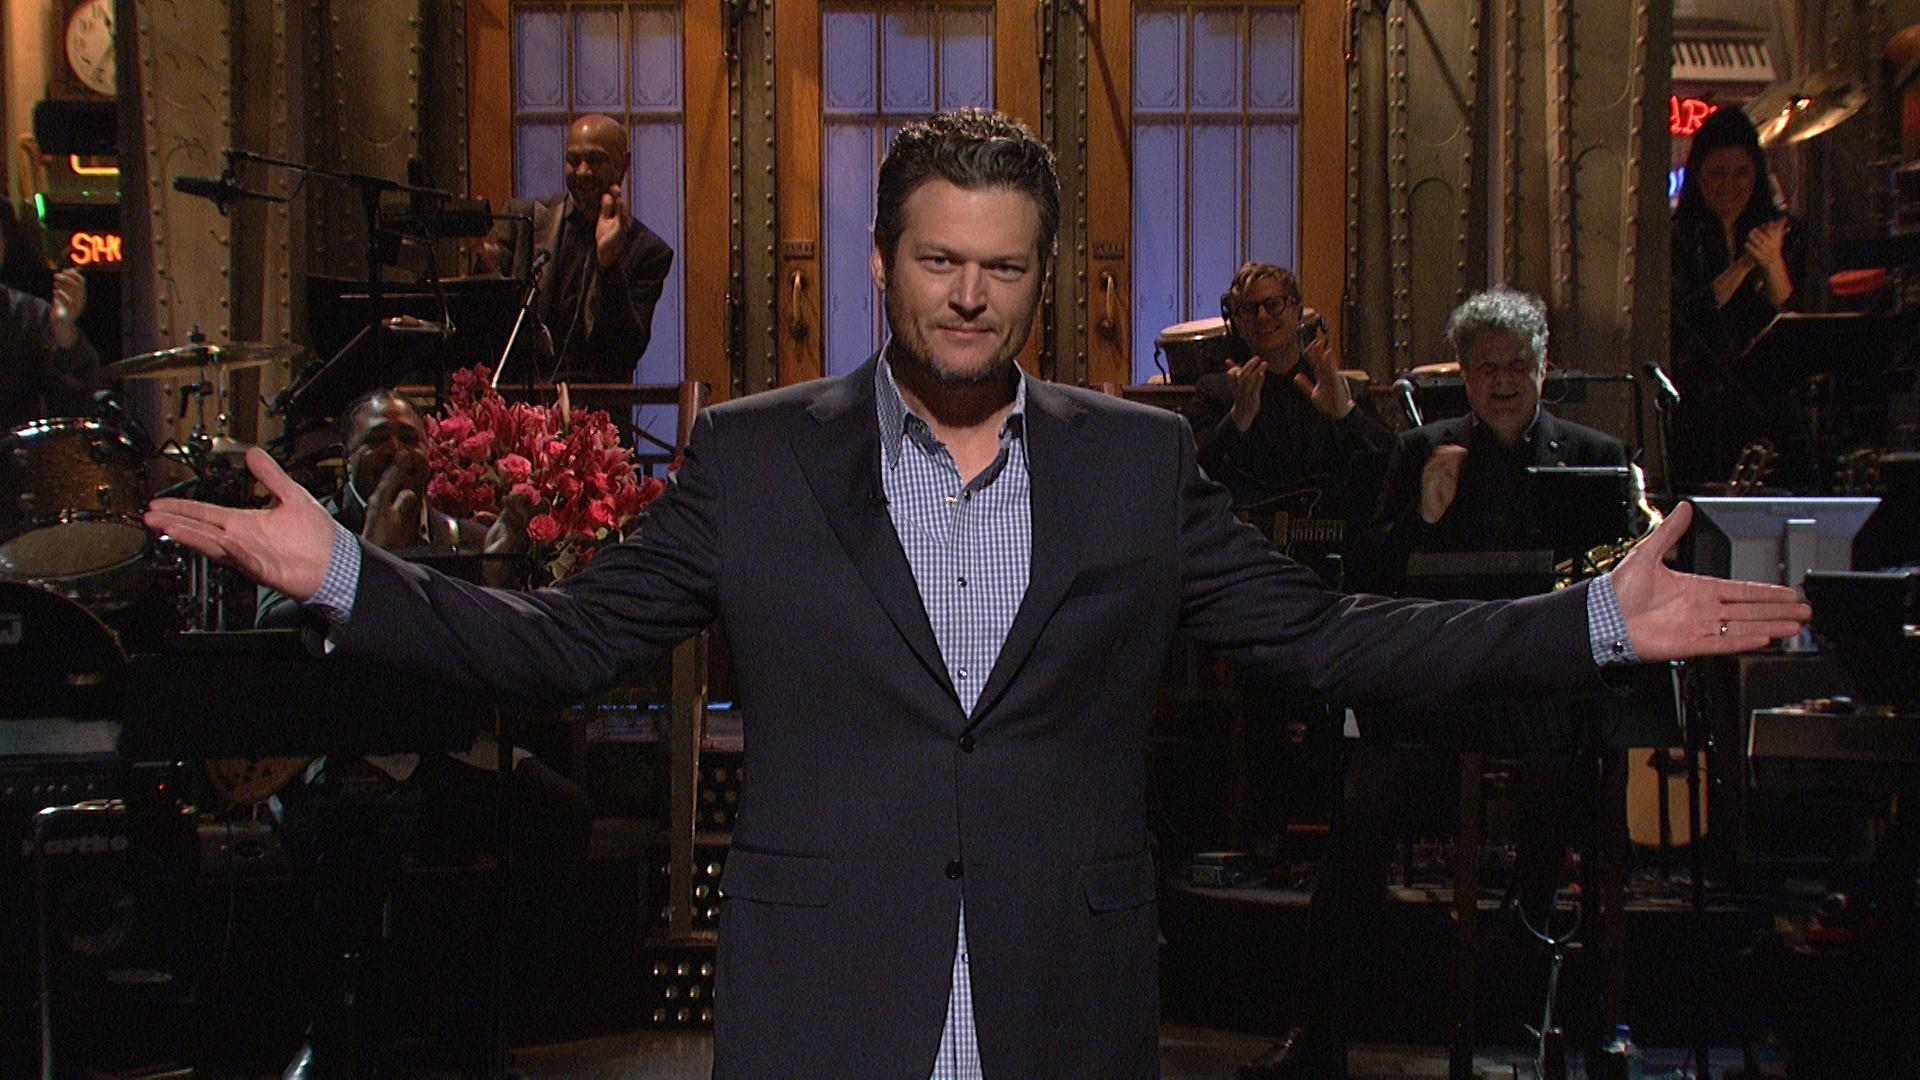 'SNL' Recap: Blake Shelton Charms, But the Show Was Out of Tune